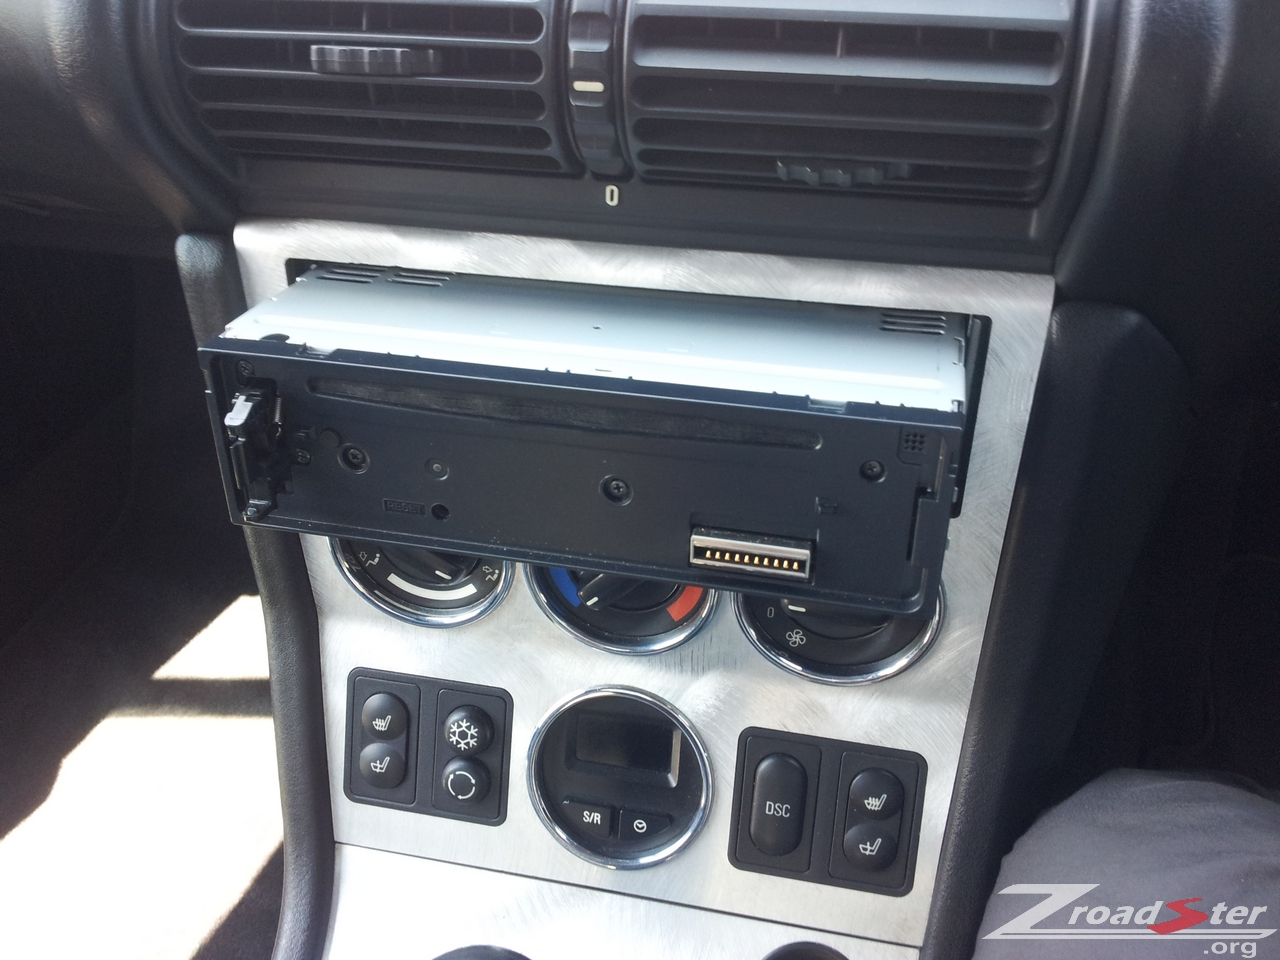 bmw z3 radio head unit removal and replacement bmw z1 z4. Black Bedroom Furniture Sets. Home Design Ideas